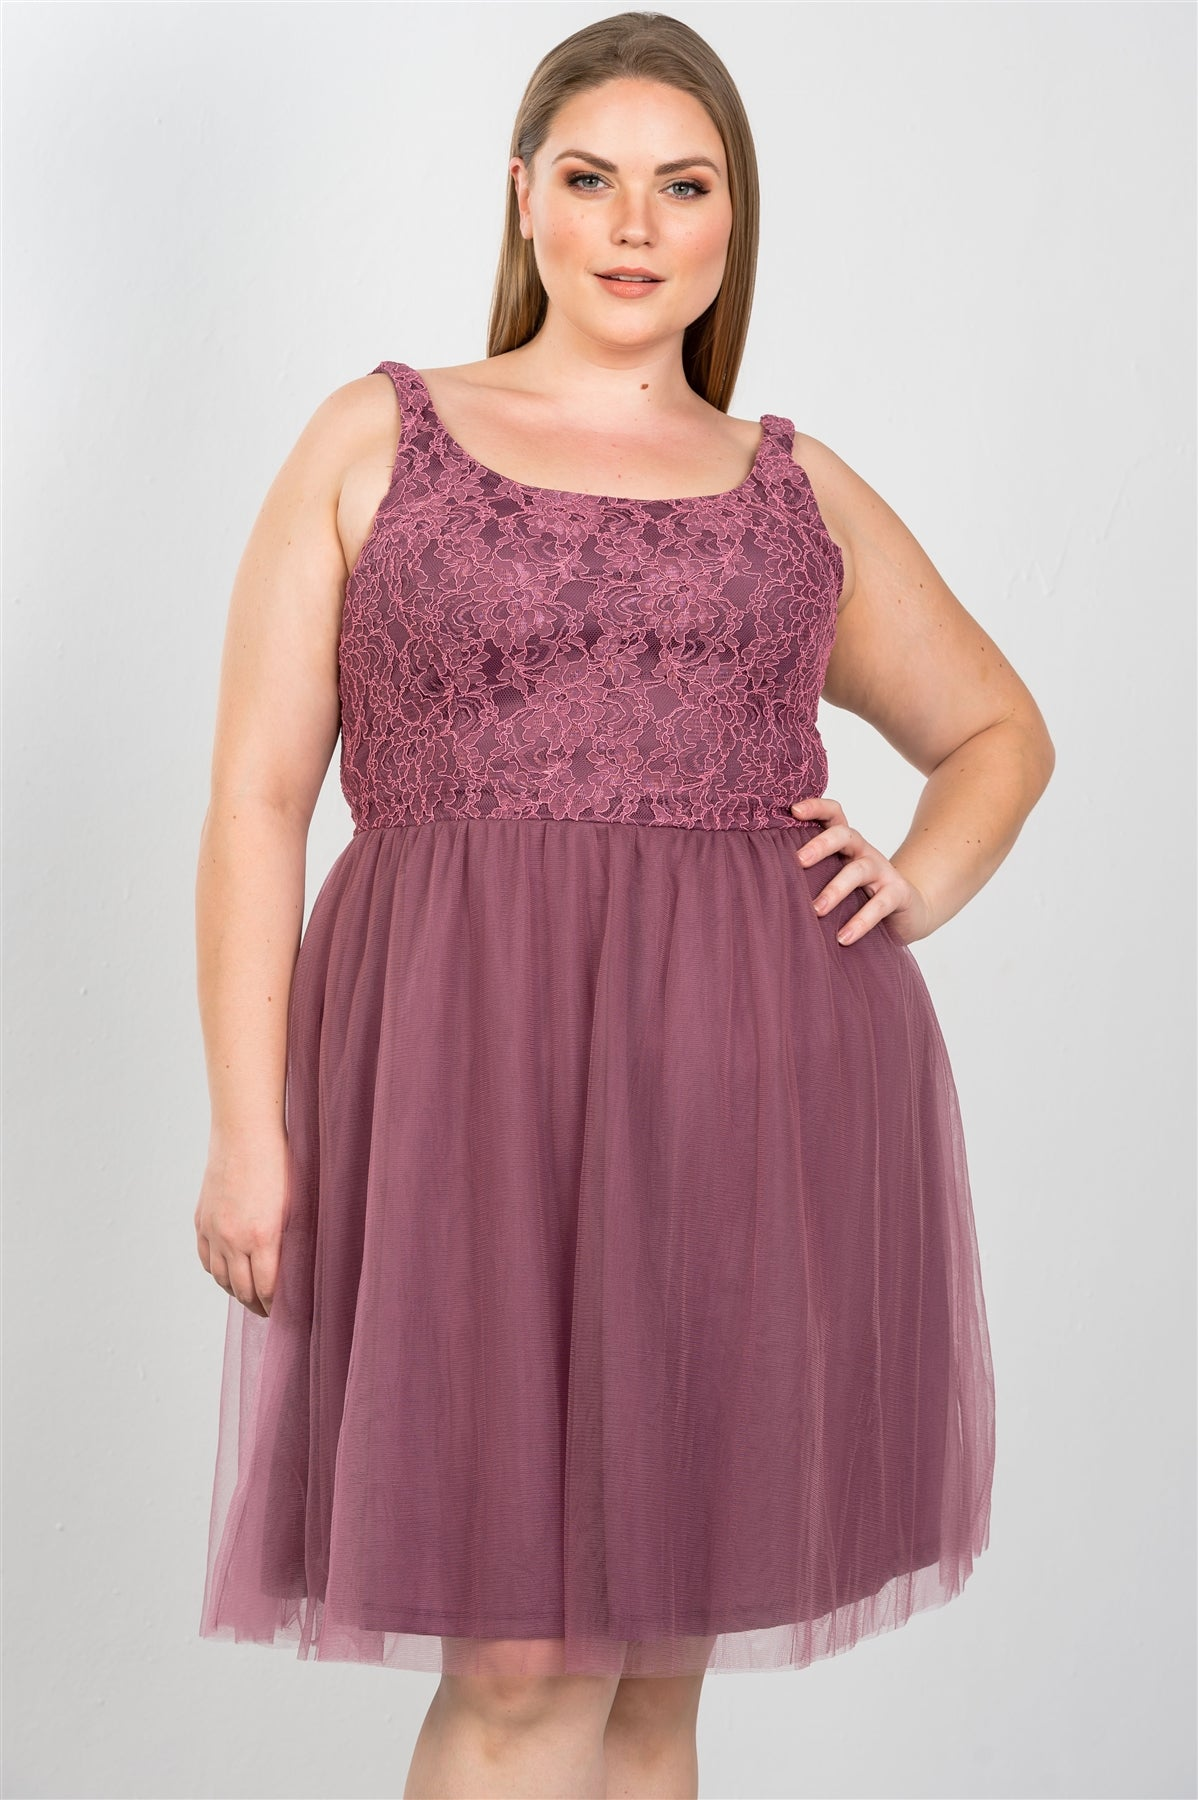 Ladies fashion plus size lace top midi dress with tulle skirt